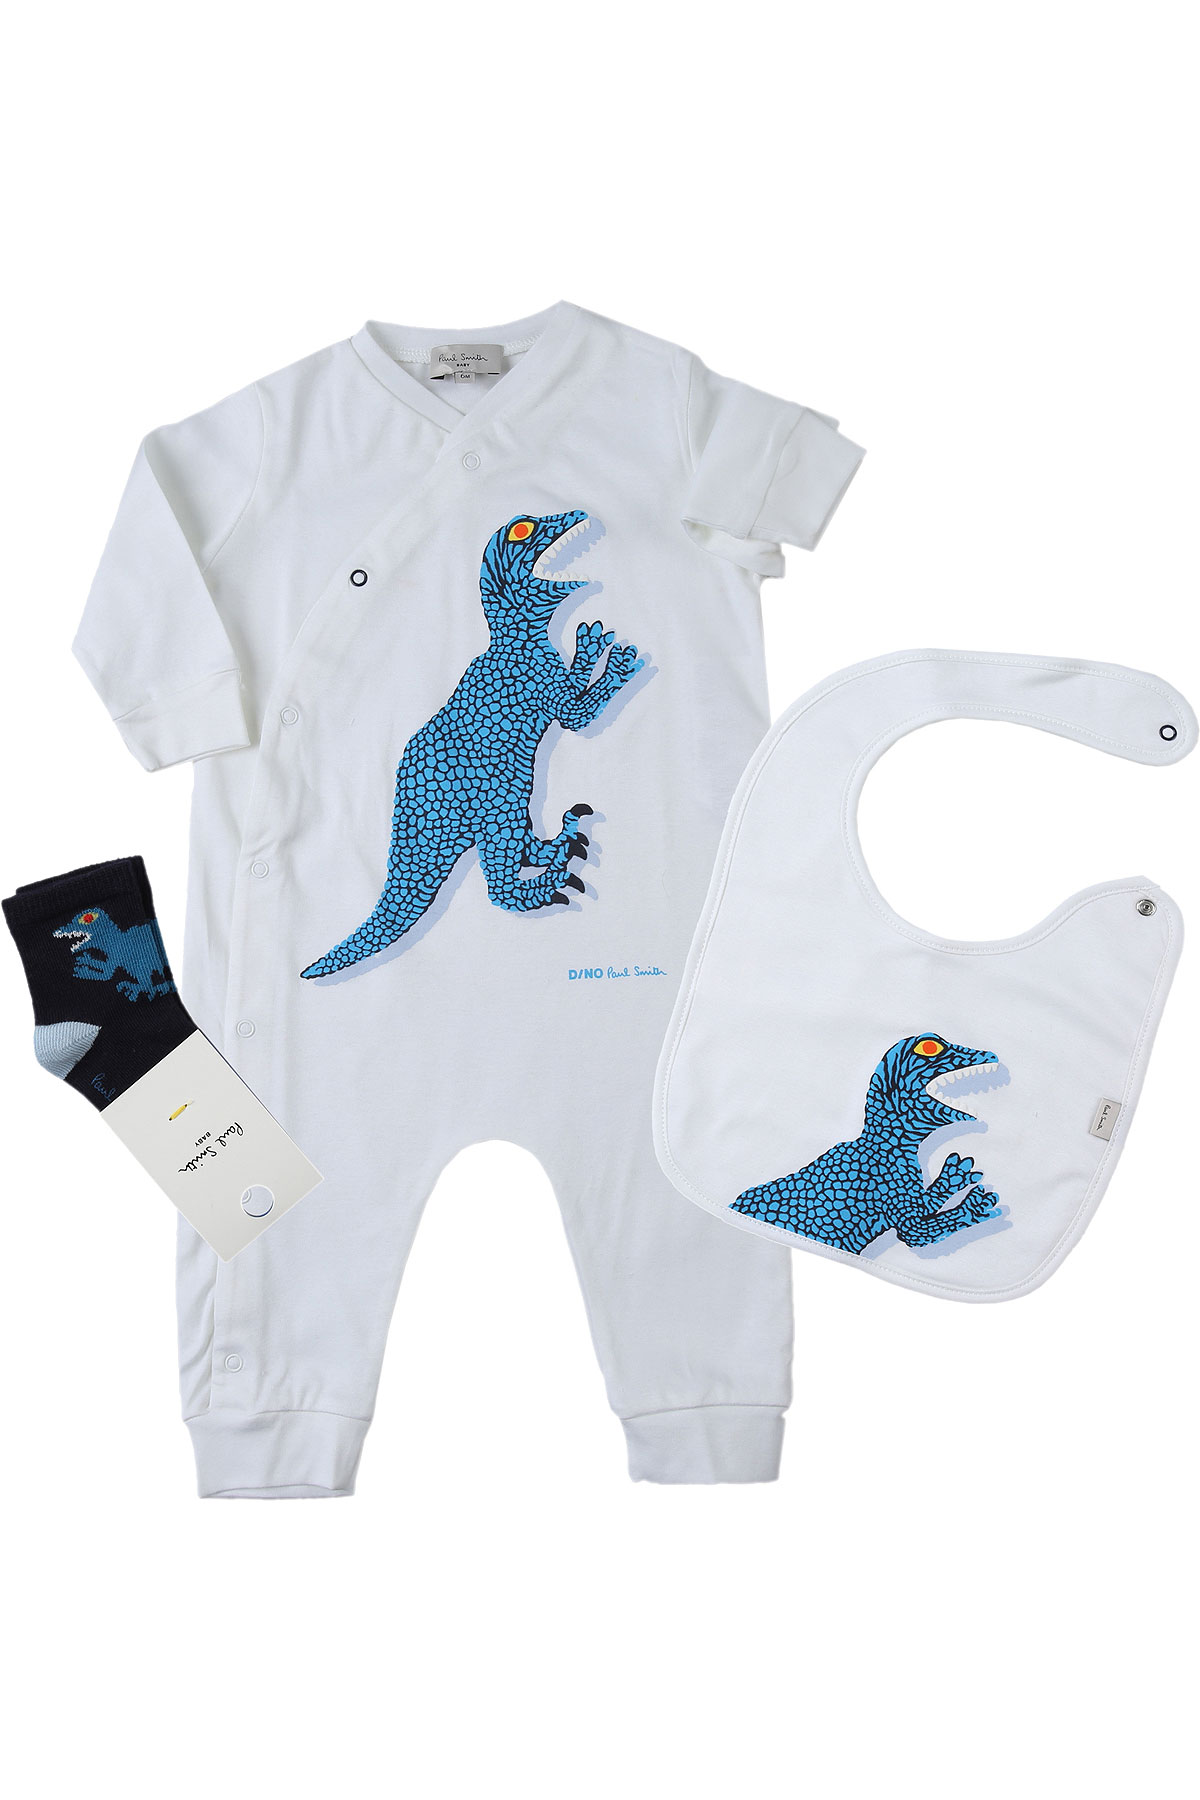 Paul Smith Baby Bodysuits & Onesies for Boys On Sale, White, Cotton, 2019, 3M 6M 9M